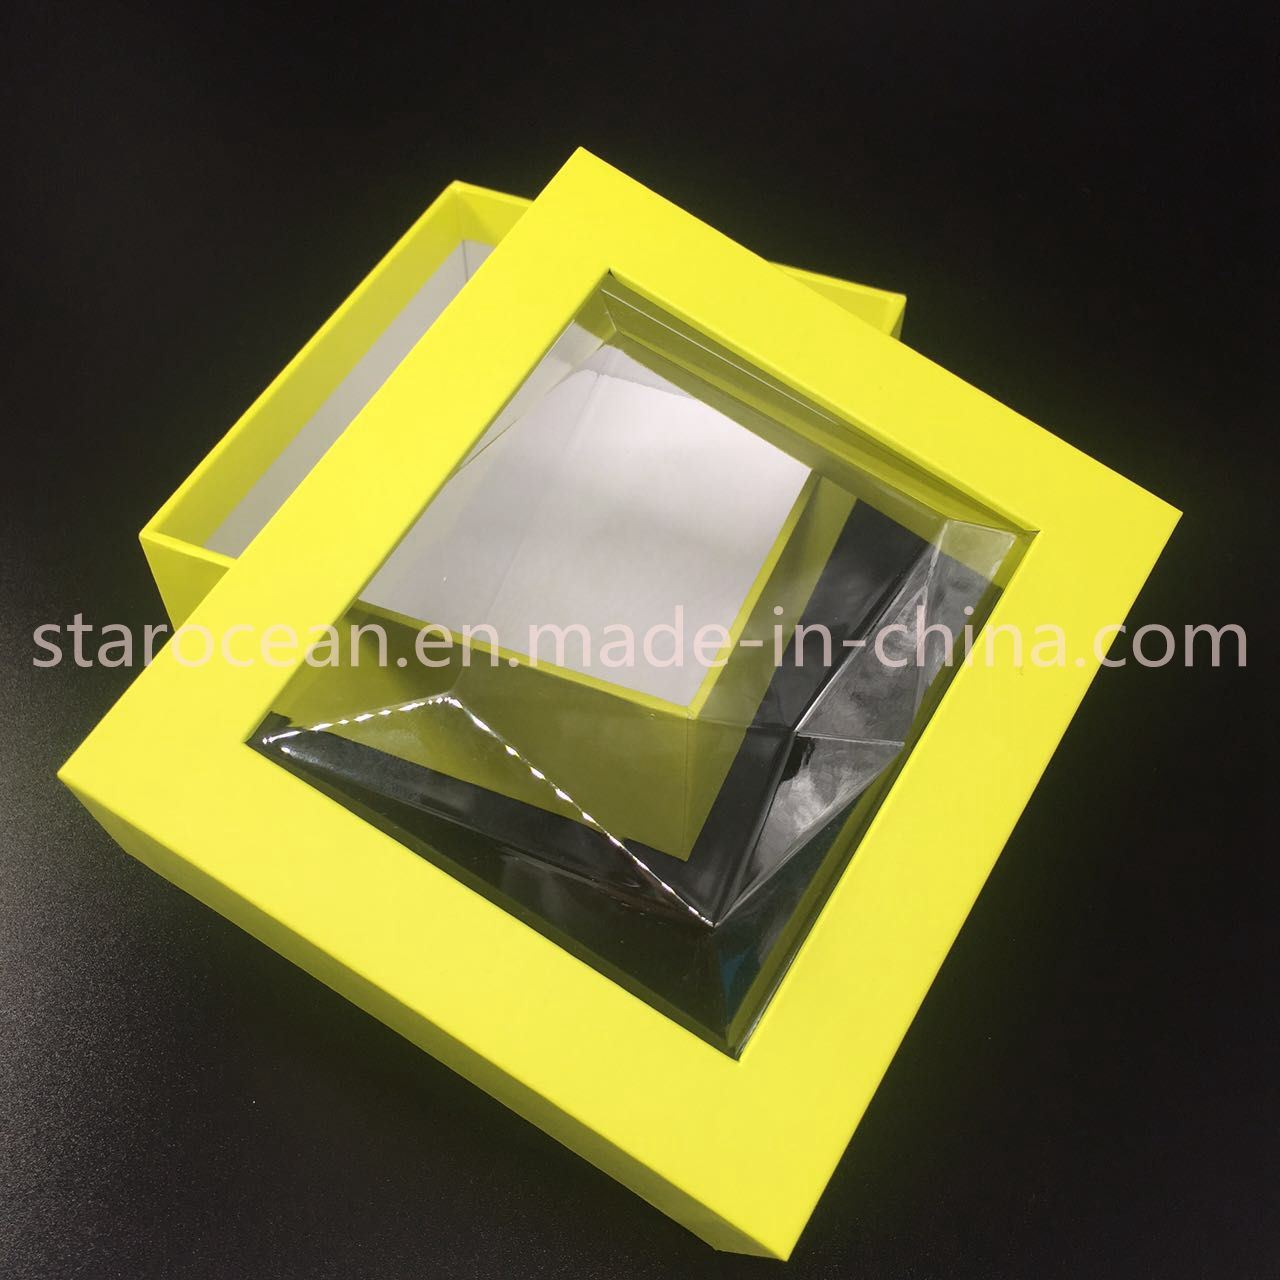 Gift Box for Plastic Box Cosmetic Packaging